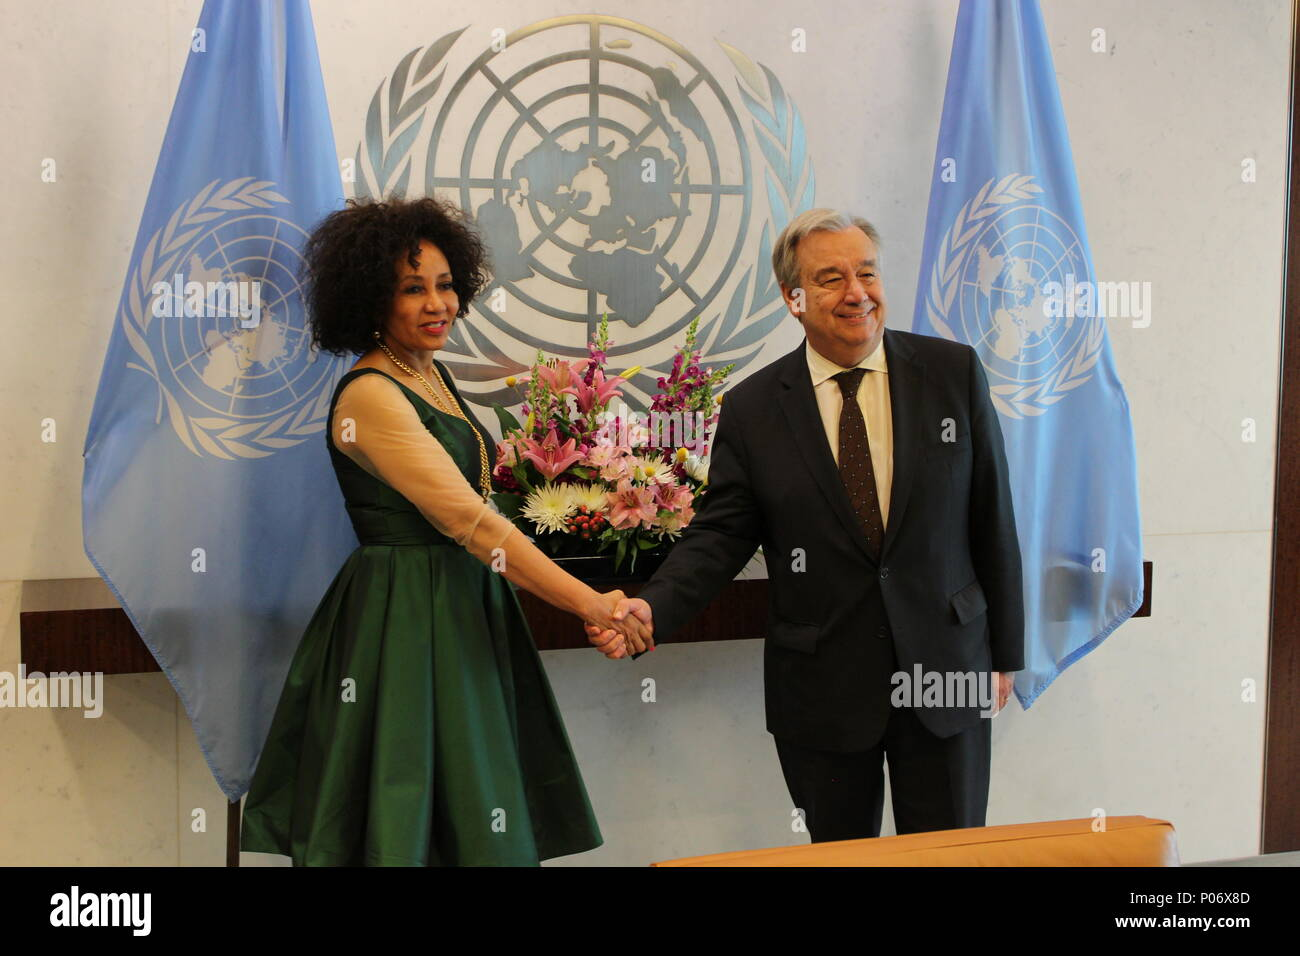 UN, New York, USA. 8th June, 2018. UN Sec Gen Antonio Guterres met Lindiwe Nonceba Sisulu, Minister for International Relations and Cooperation of South Africa just after the country was elected to UN Security Council seat. Photo: Matthew Russell Lee / Inner City Press Credit: Matthew Russell Lee/Alamy Live News Stock Photo